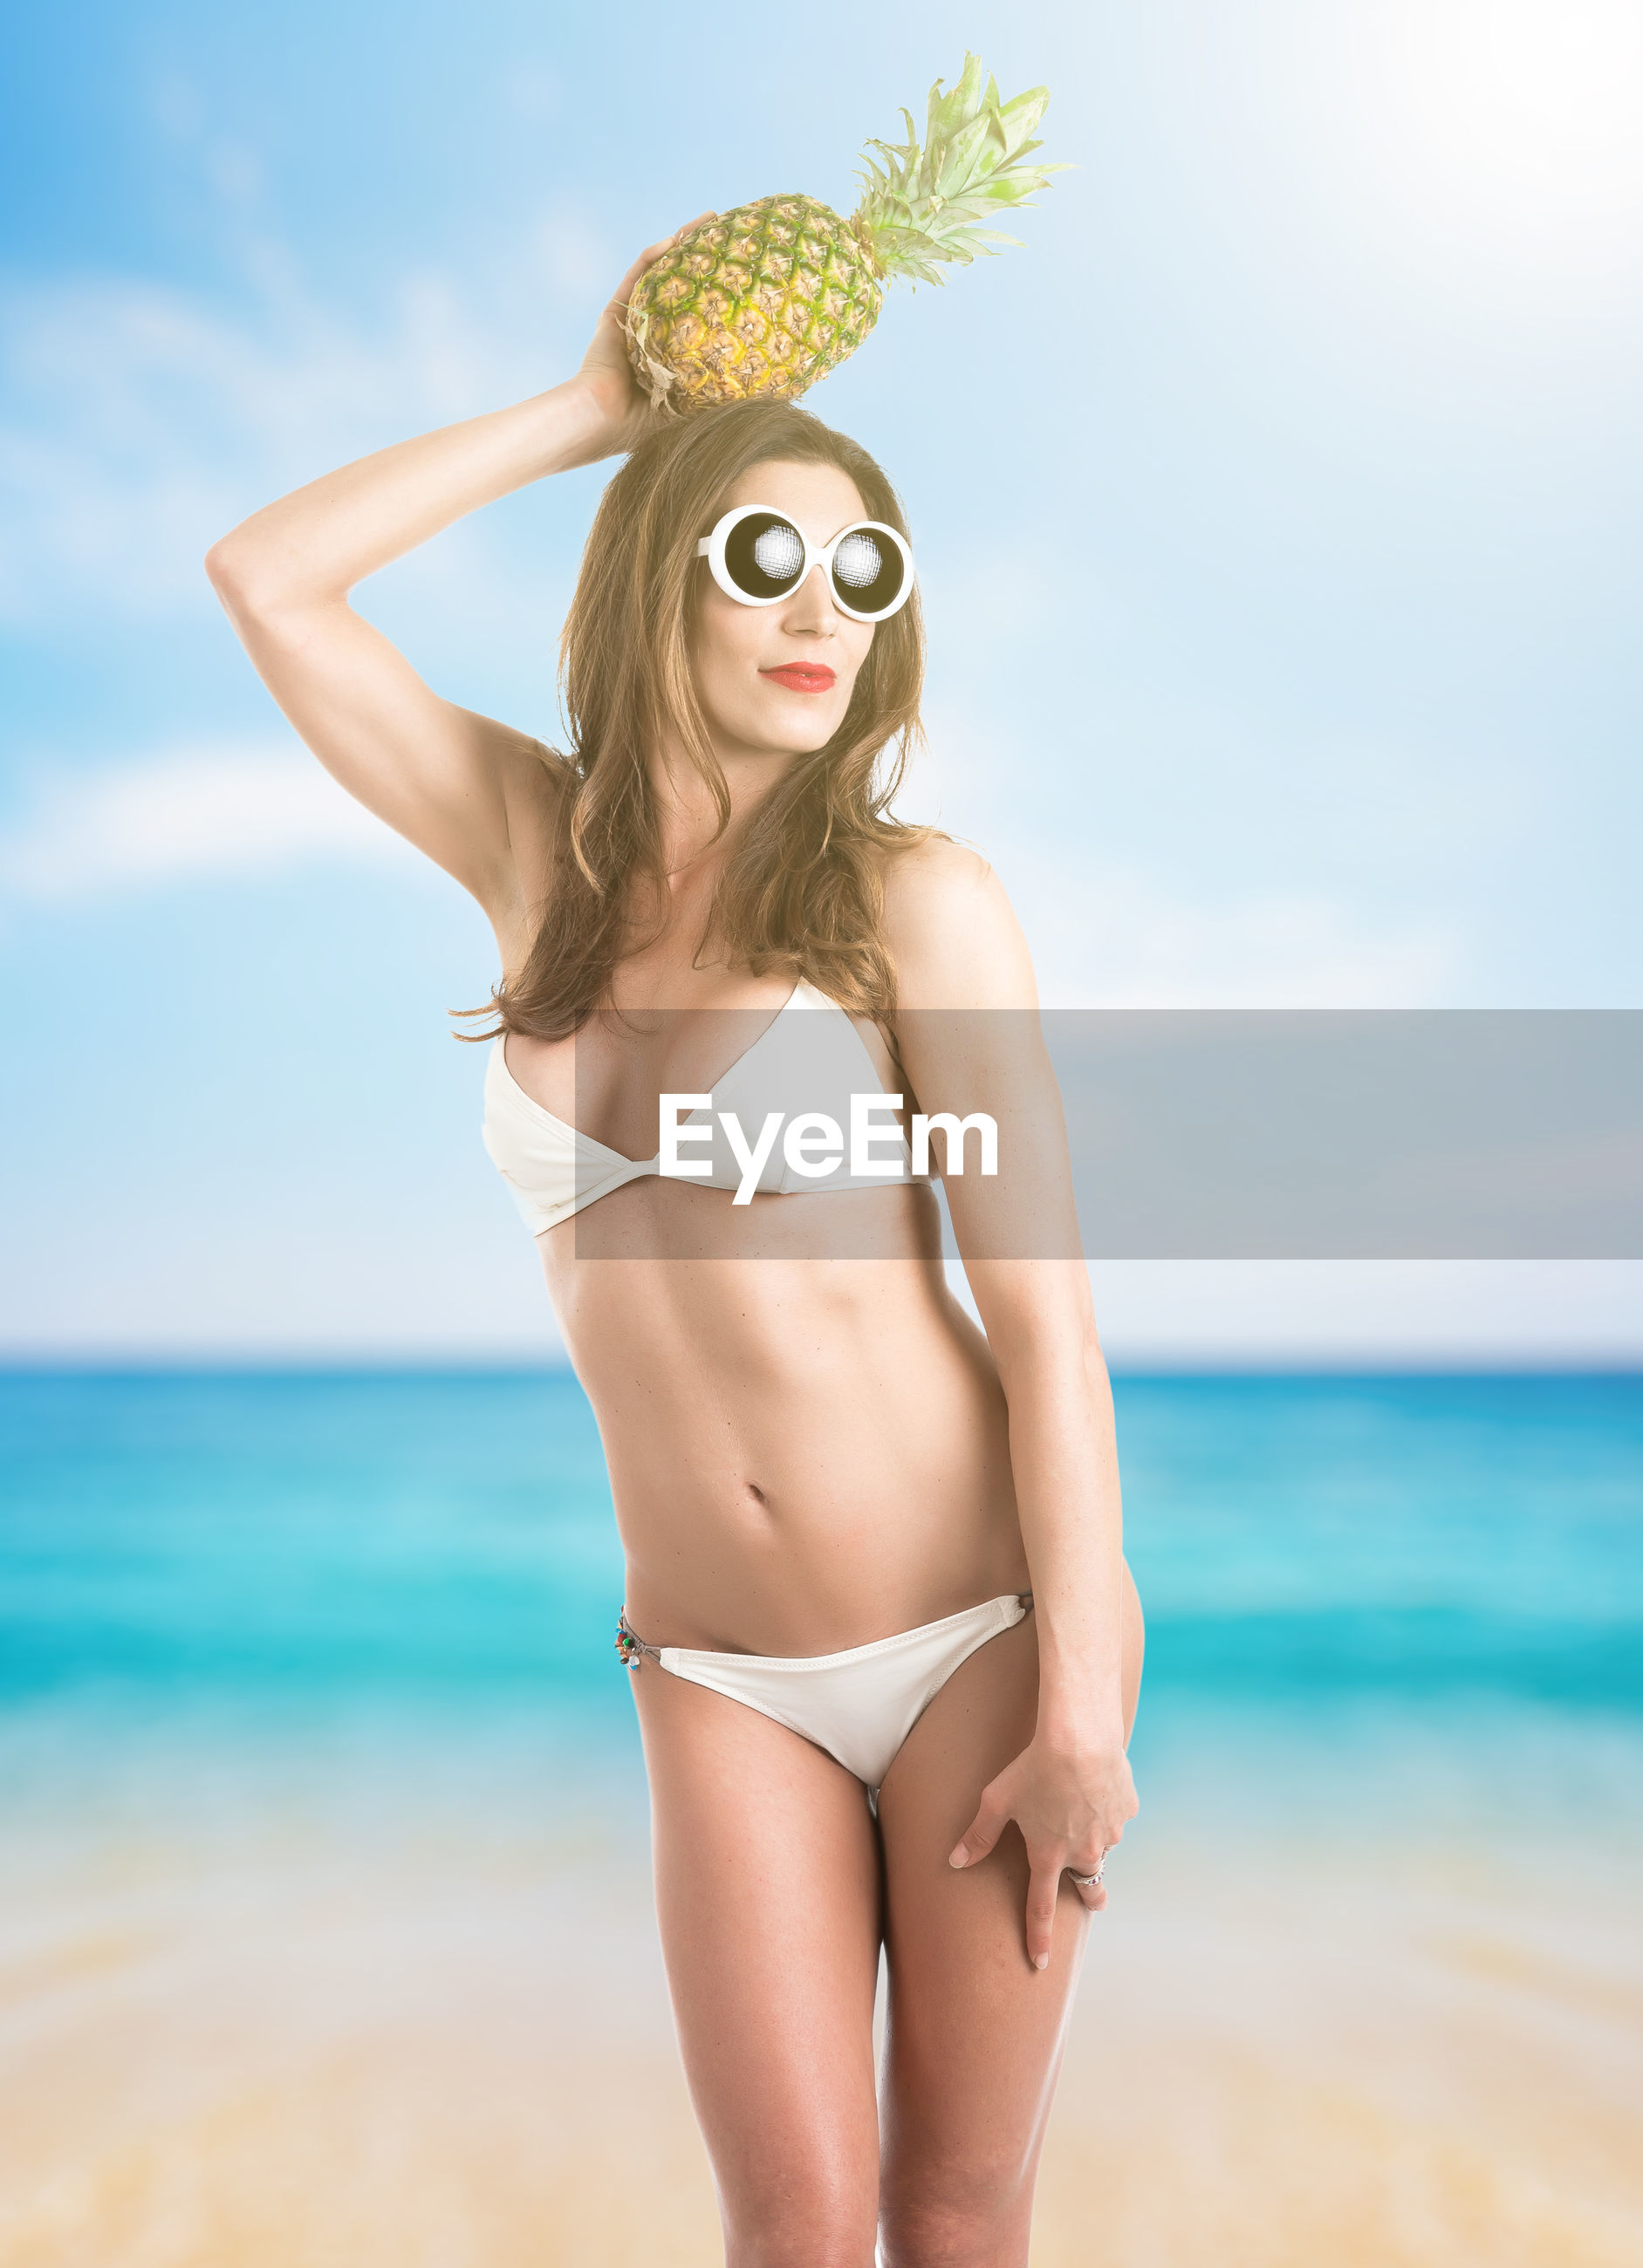 Woman holding pineapple while standing at beach